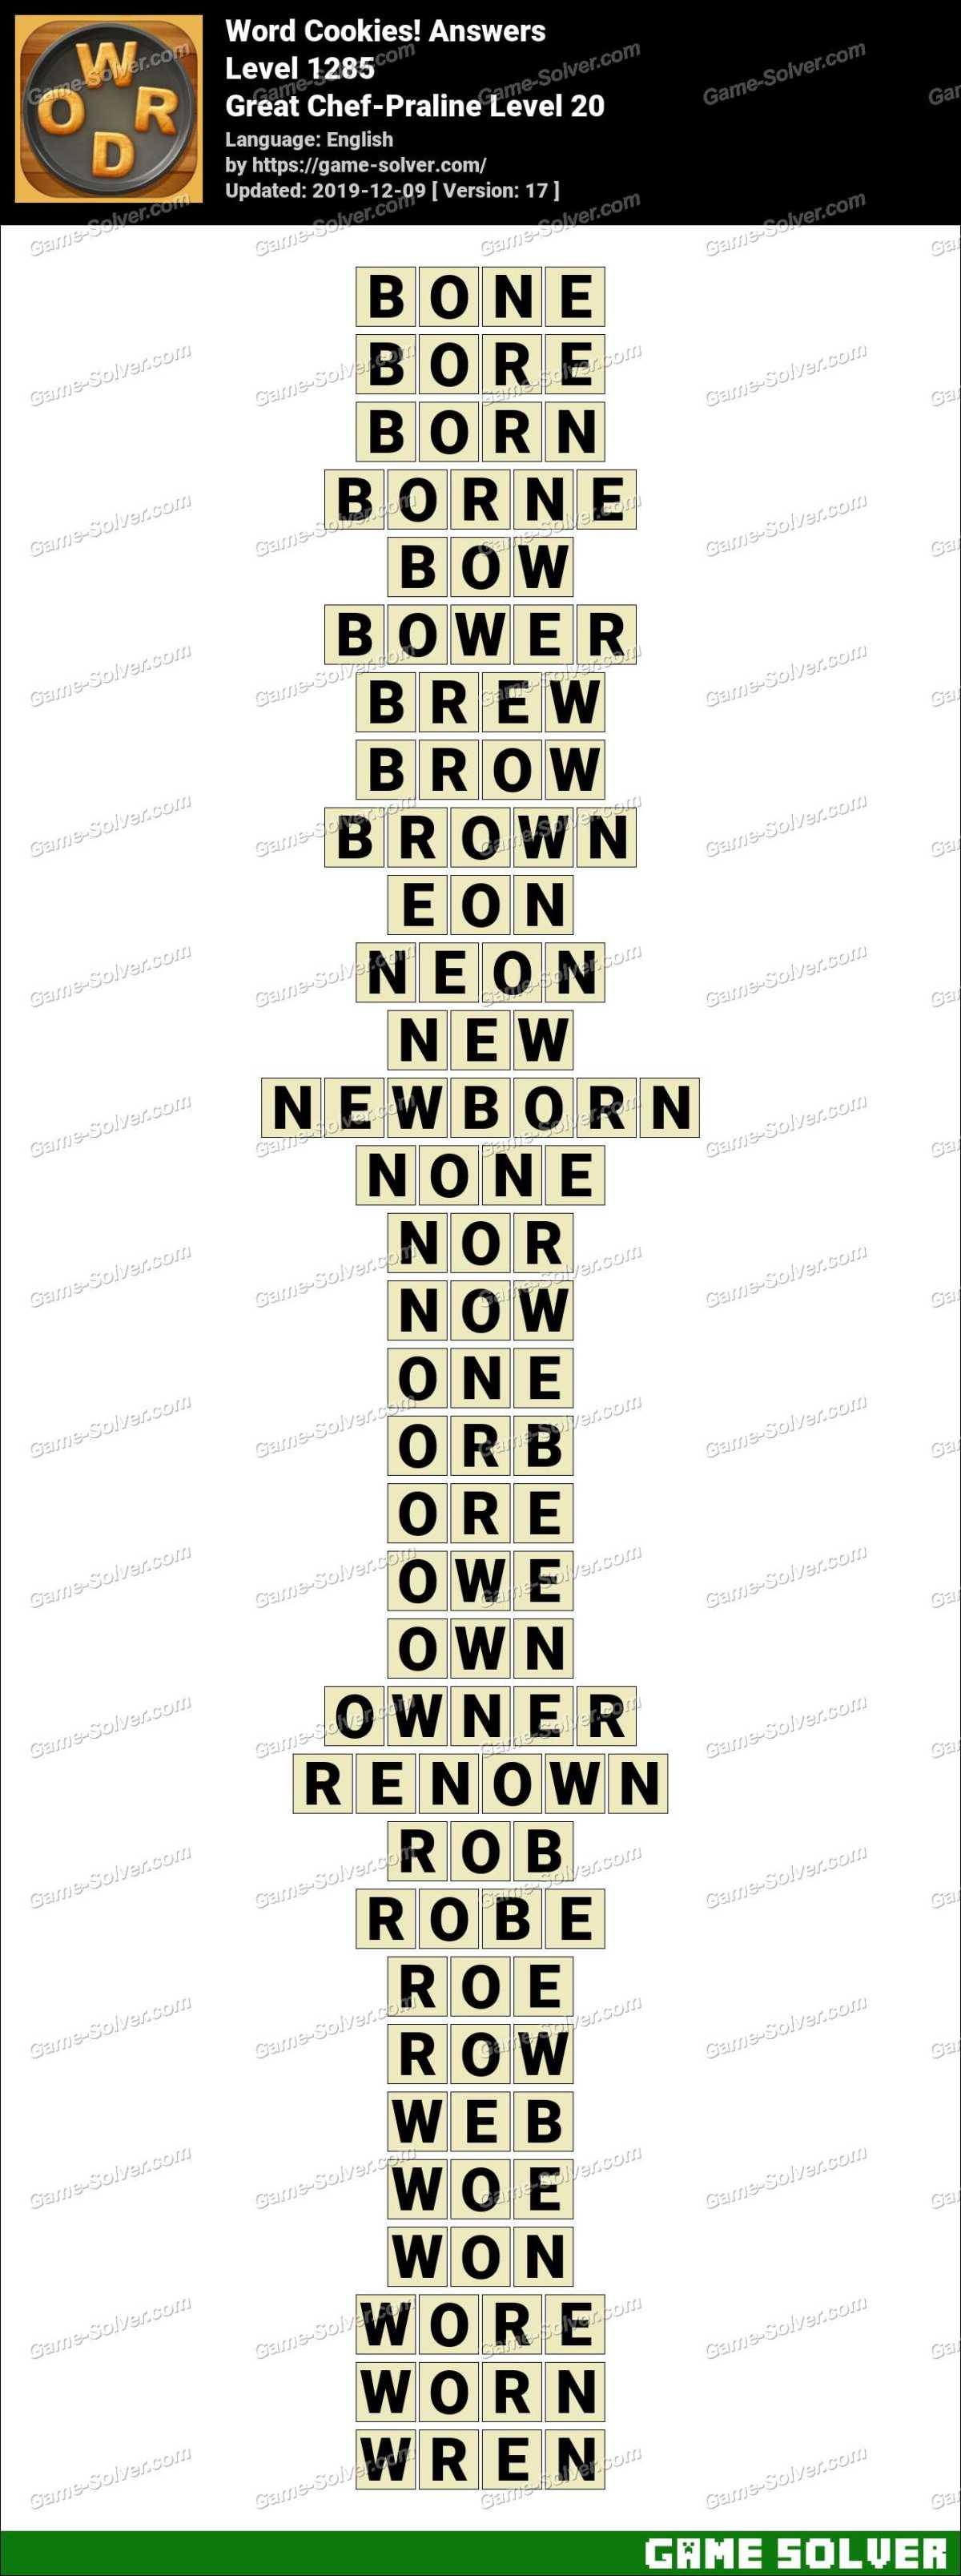 Word Cookies Great Chef-Praline Level 20 Answers